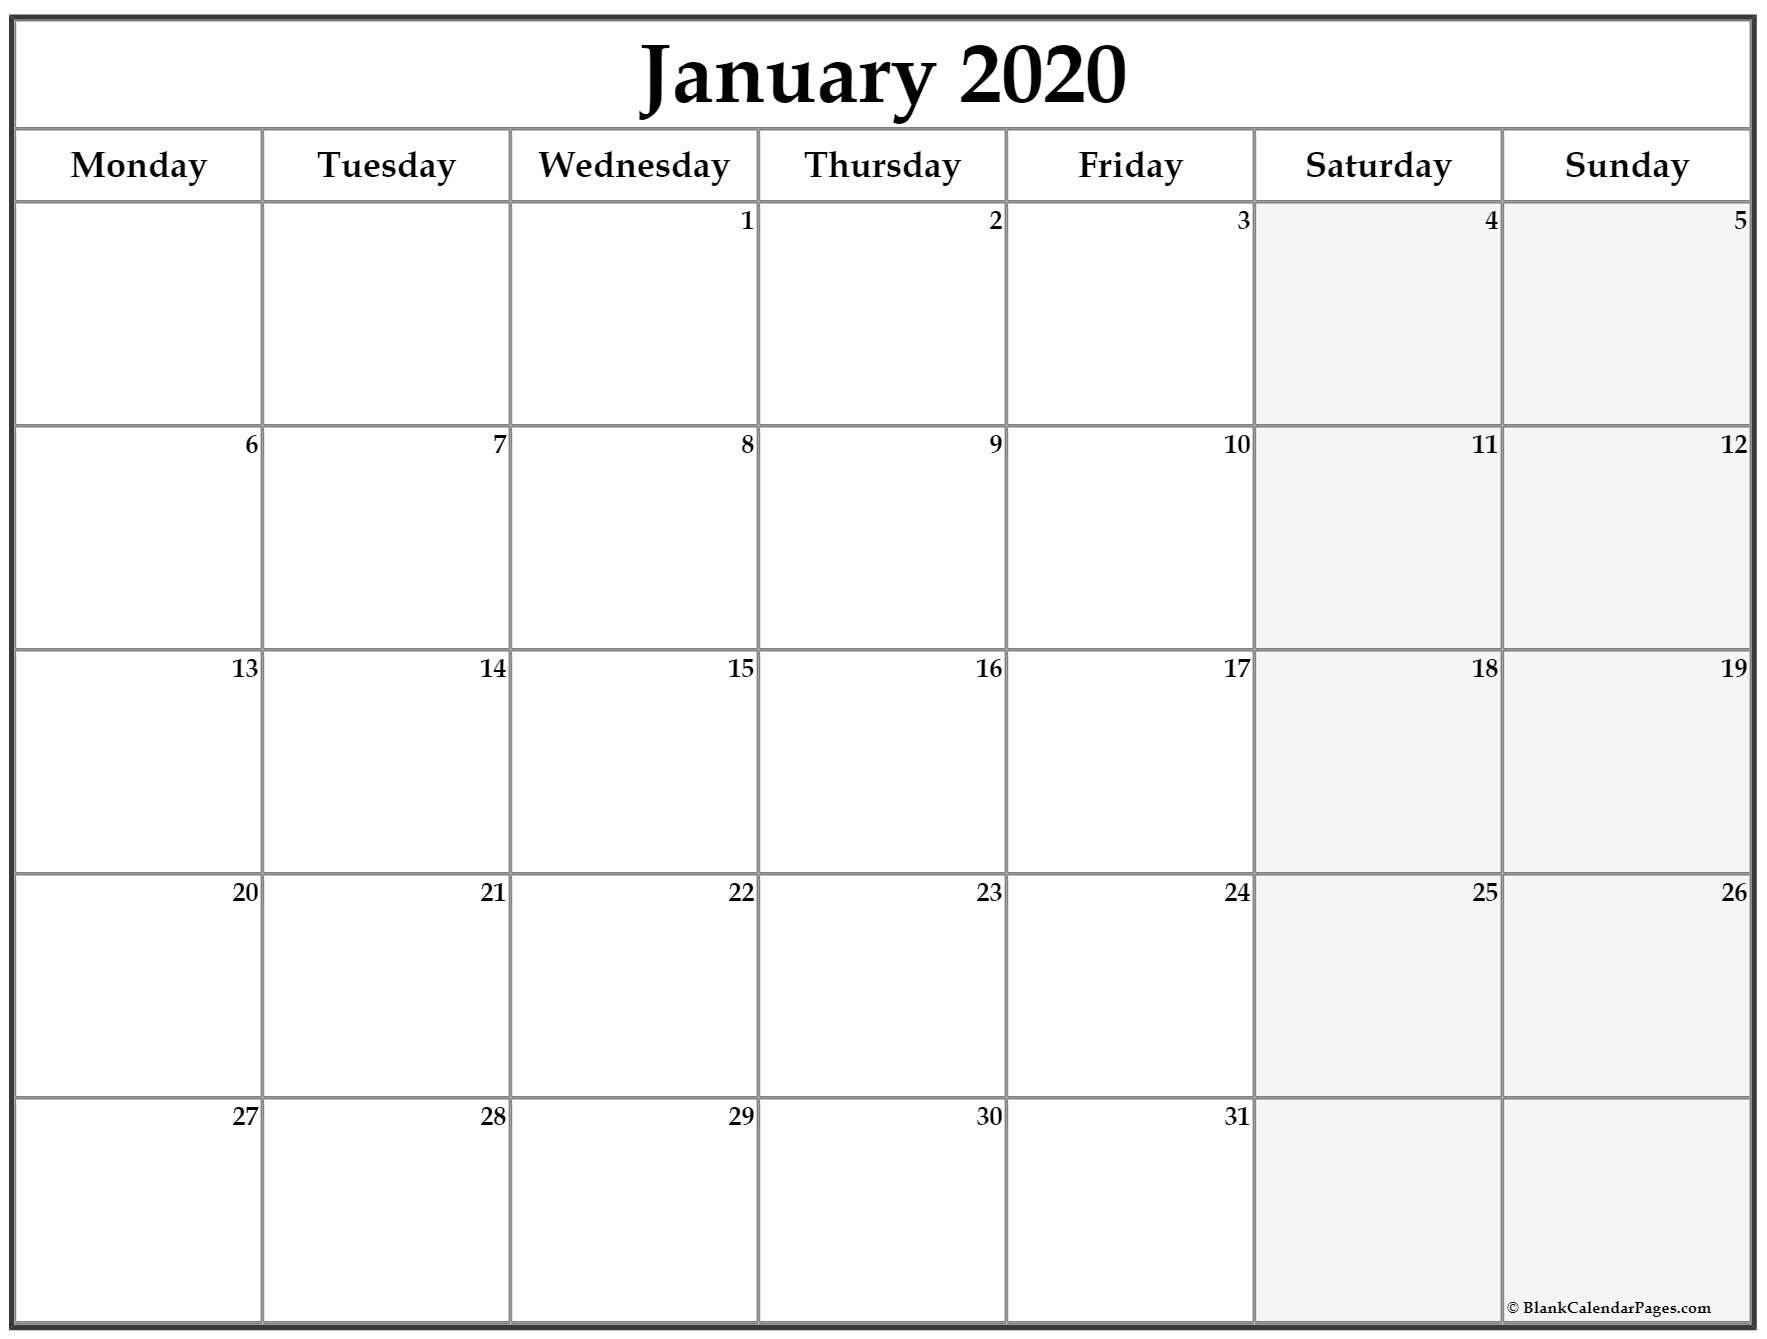 January 2020 Monday Calendar | Monday To Sunday-Monday Sunday Calendar Template